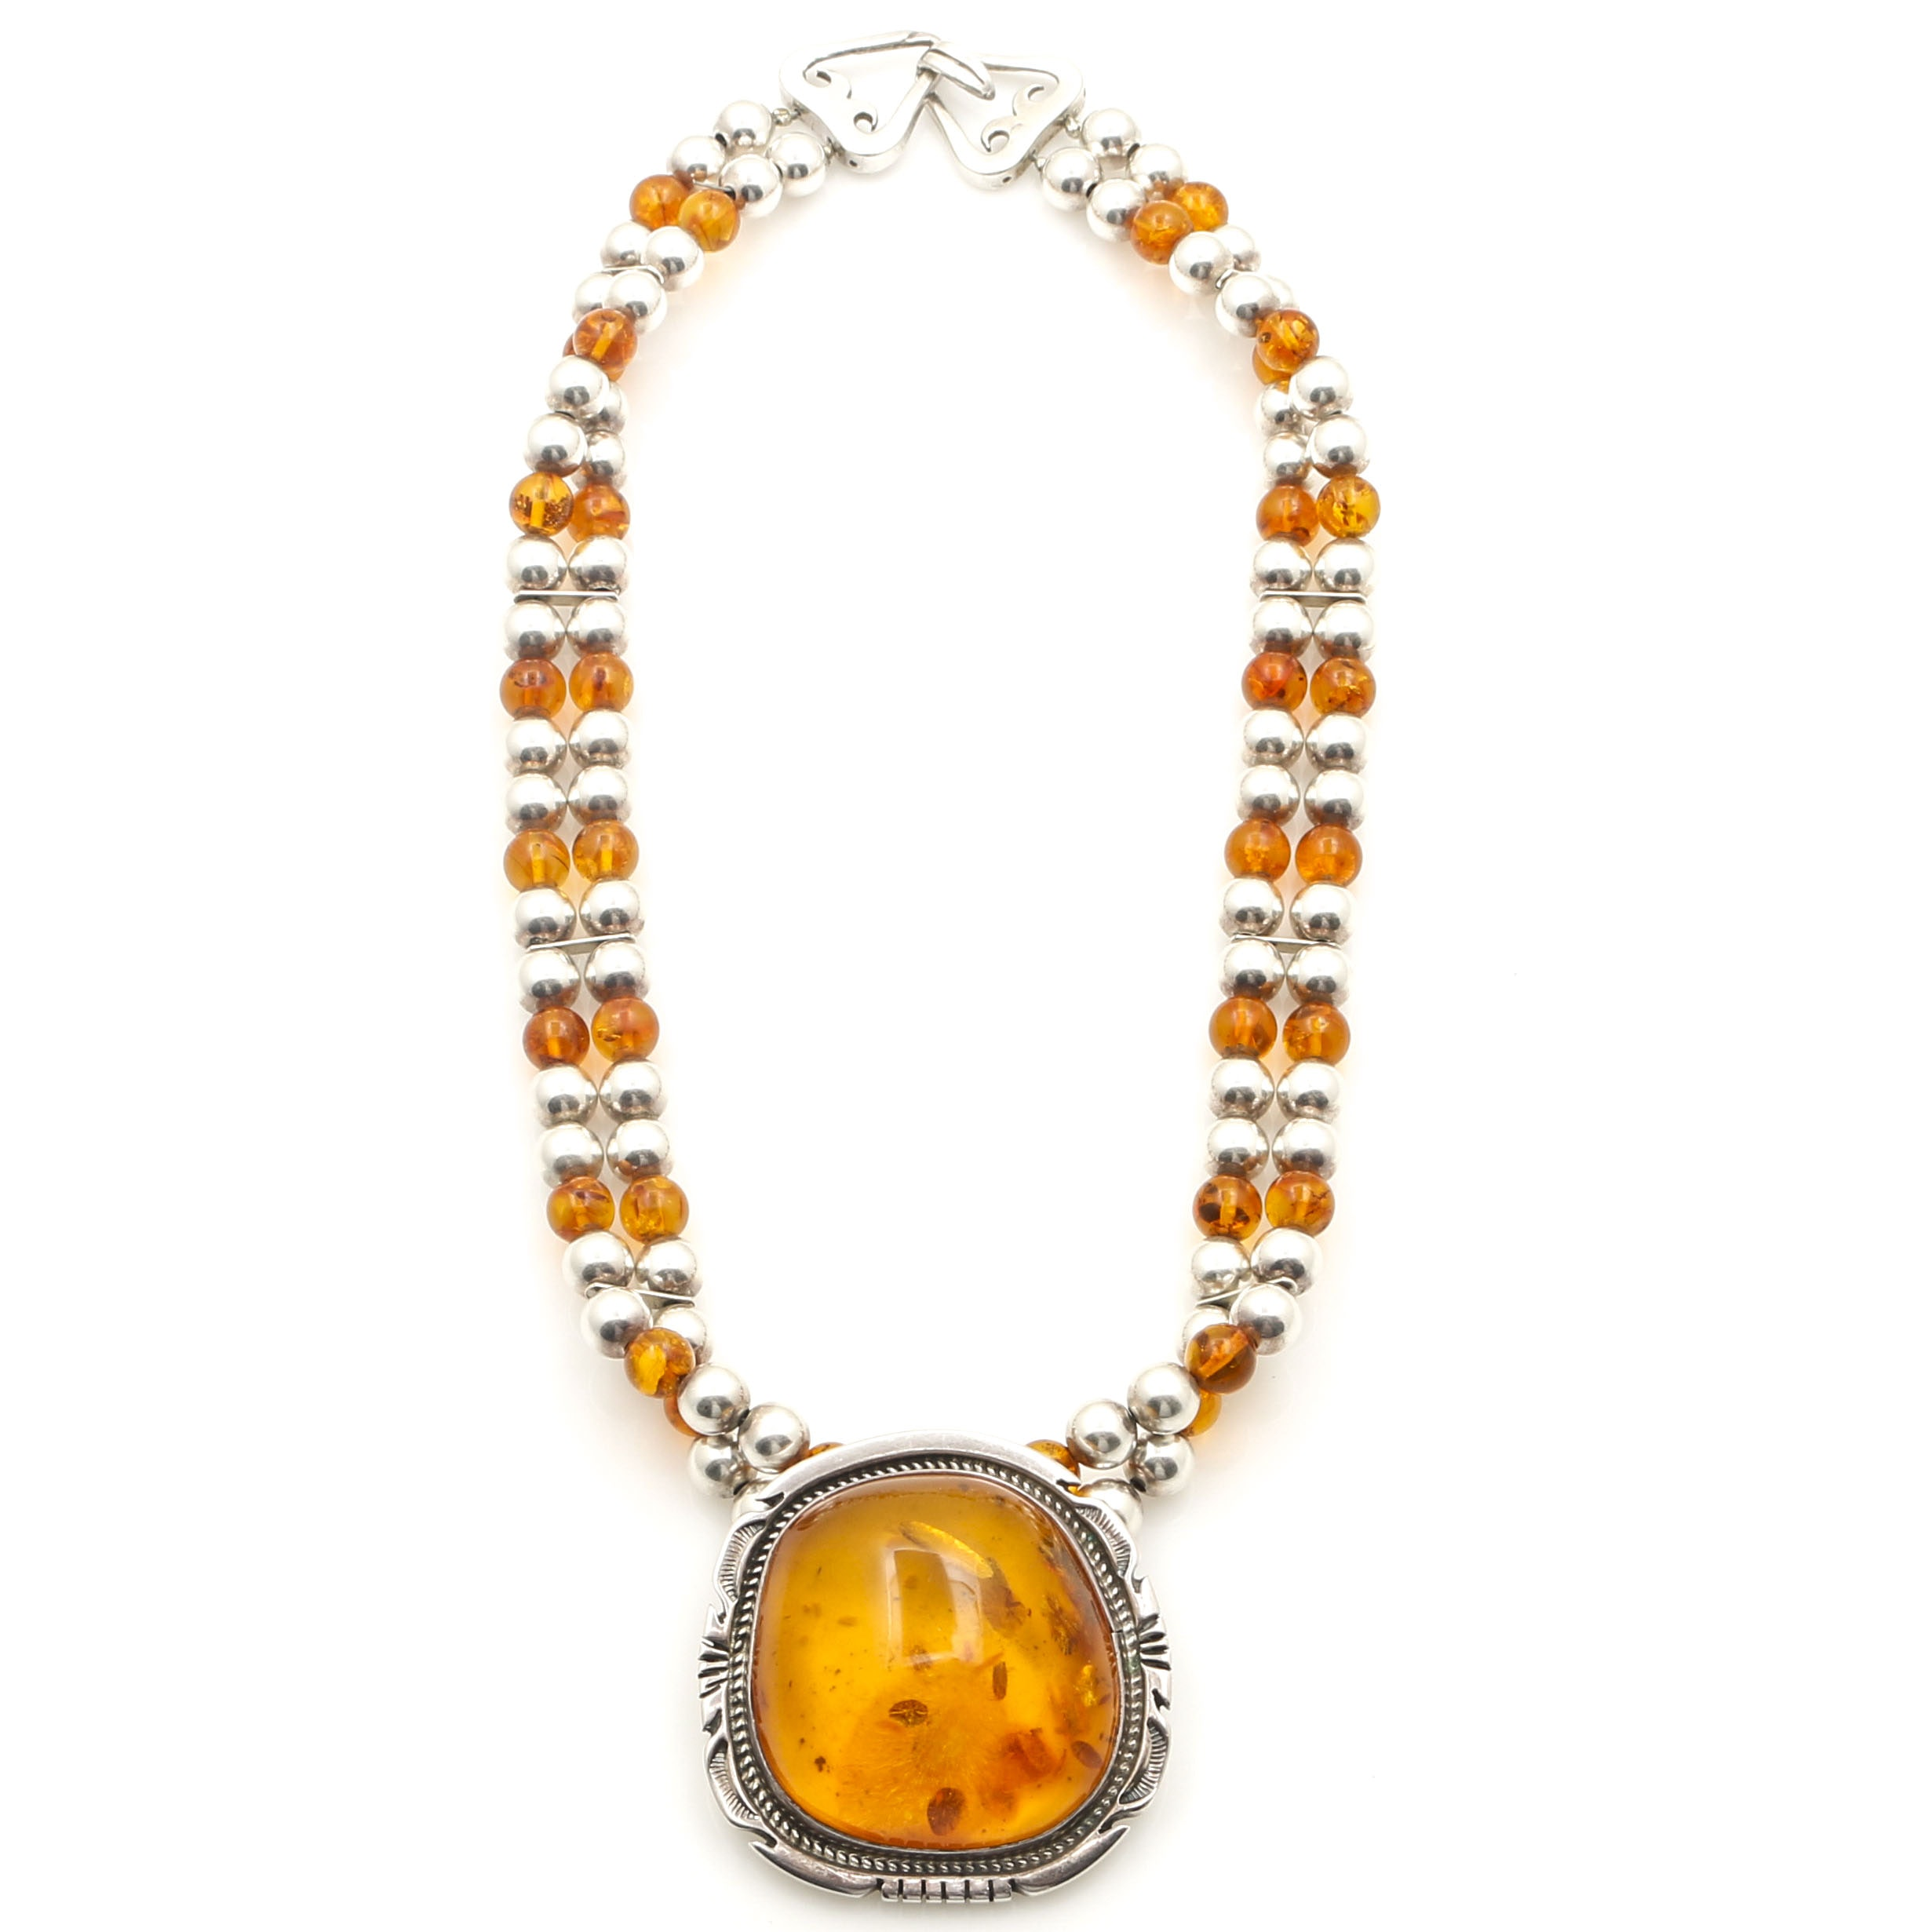 Jon McCray Sterling Silver Beaded Amber Necklace